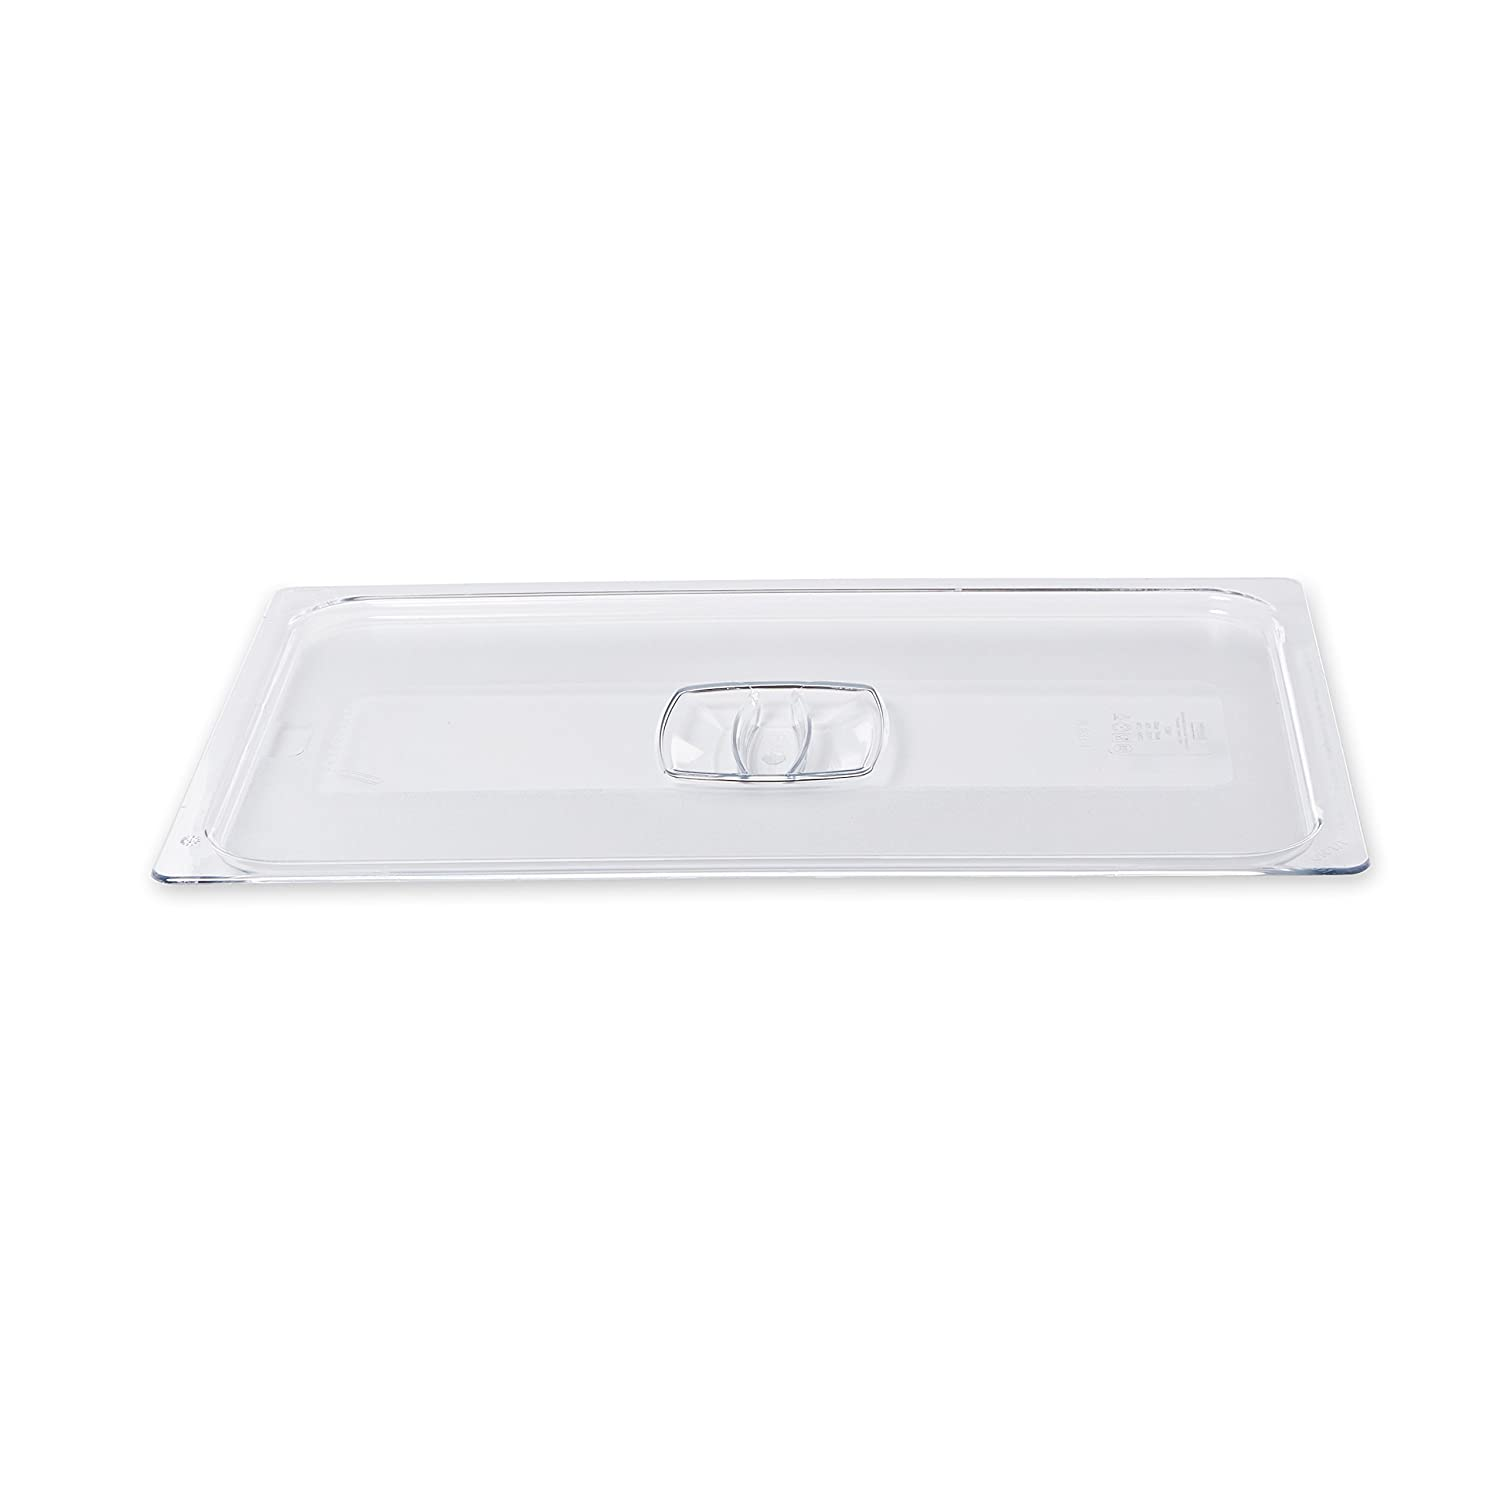 Rubbermaid Commercial Full-Size Cold Food Pan Cover, FG134P00CLR